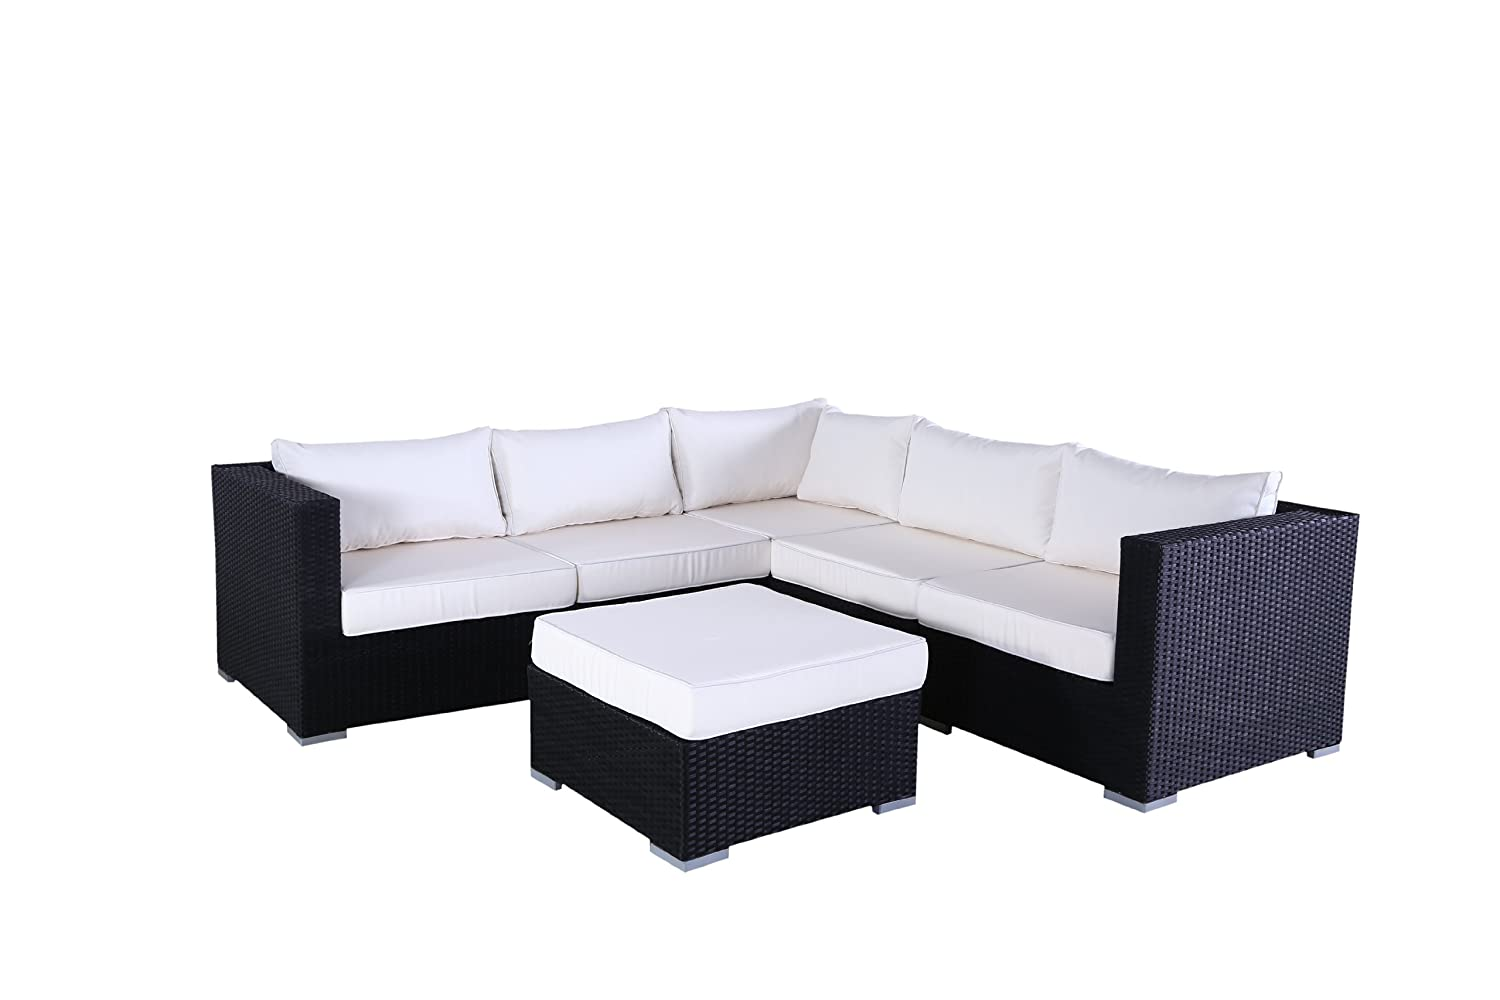 polyrattan lounge ecksofa palermo schwarz g nstig bestellen. Black Bedroom Furniture Sets. Home Design Ideas